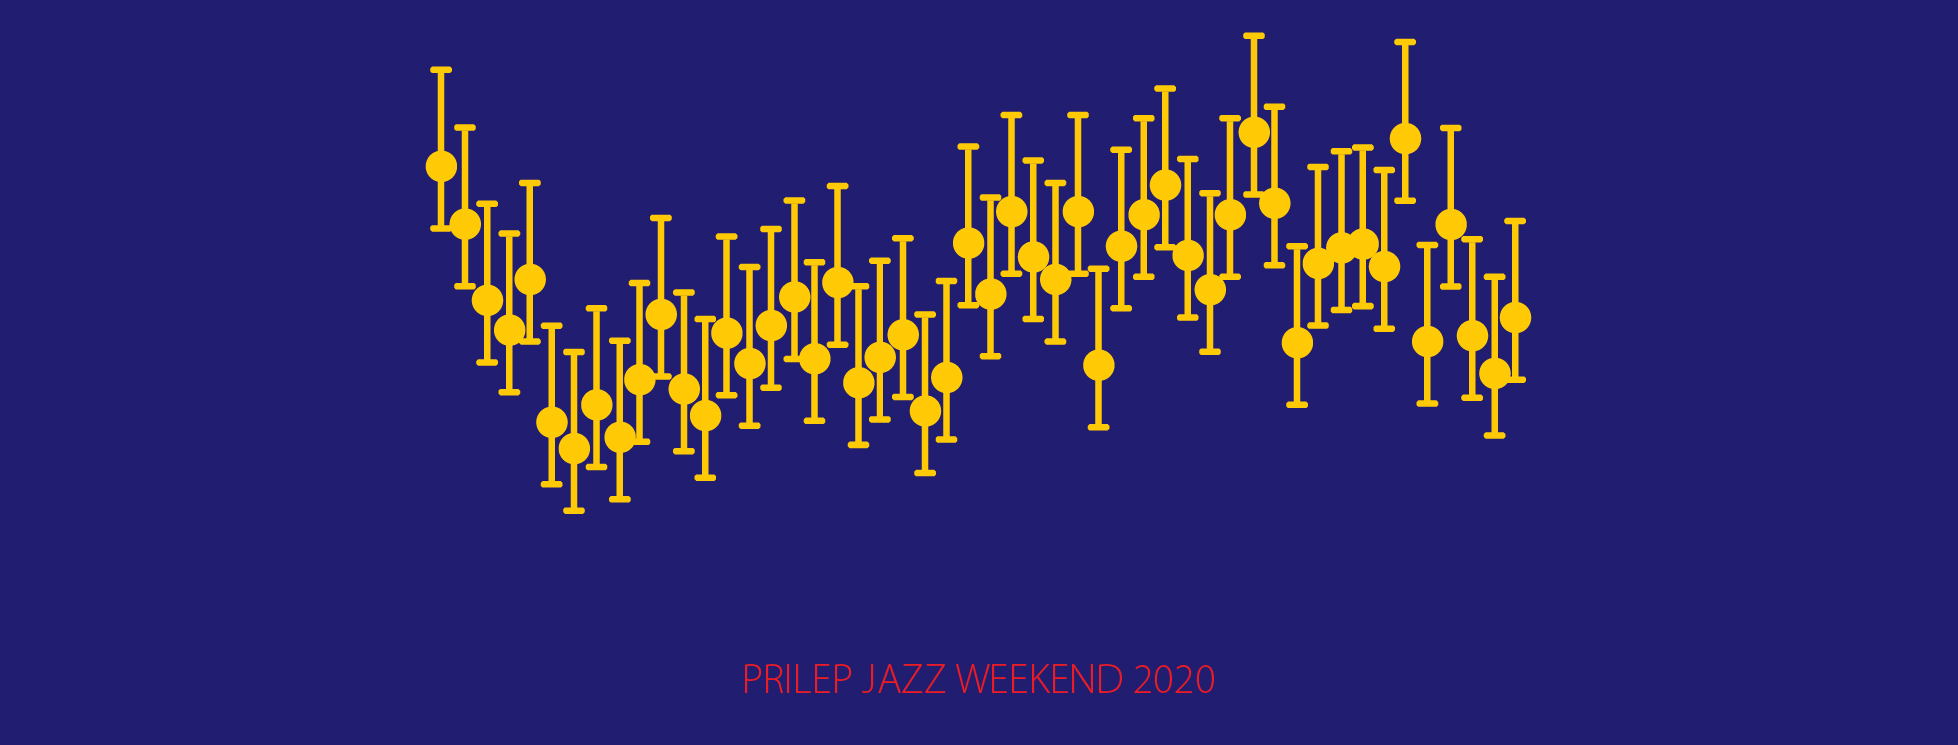 27.08.2020 - 29.08.2020 International Prilep Jazz Weekend